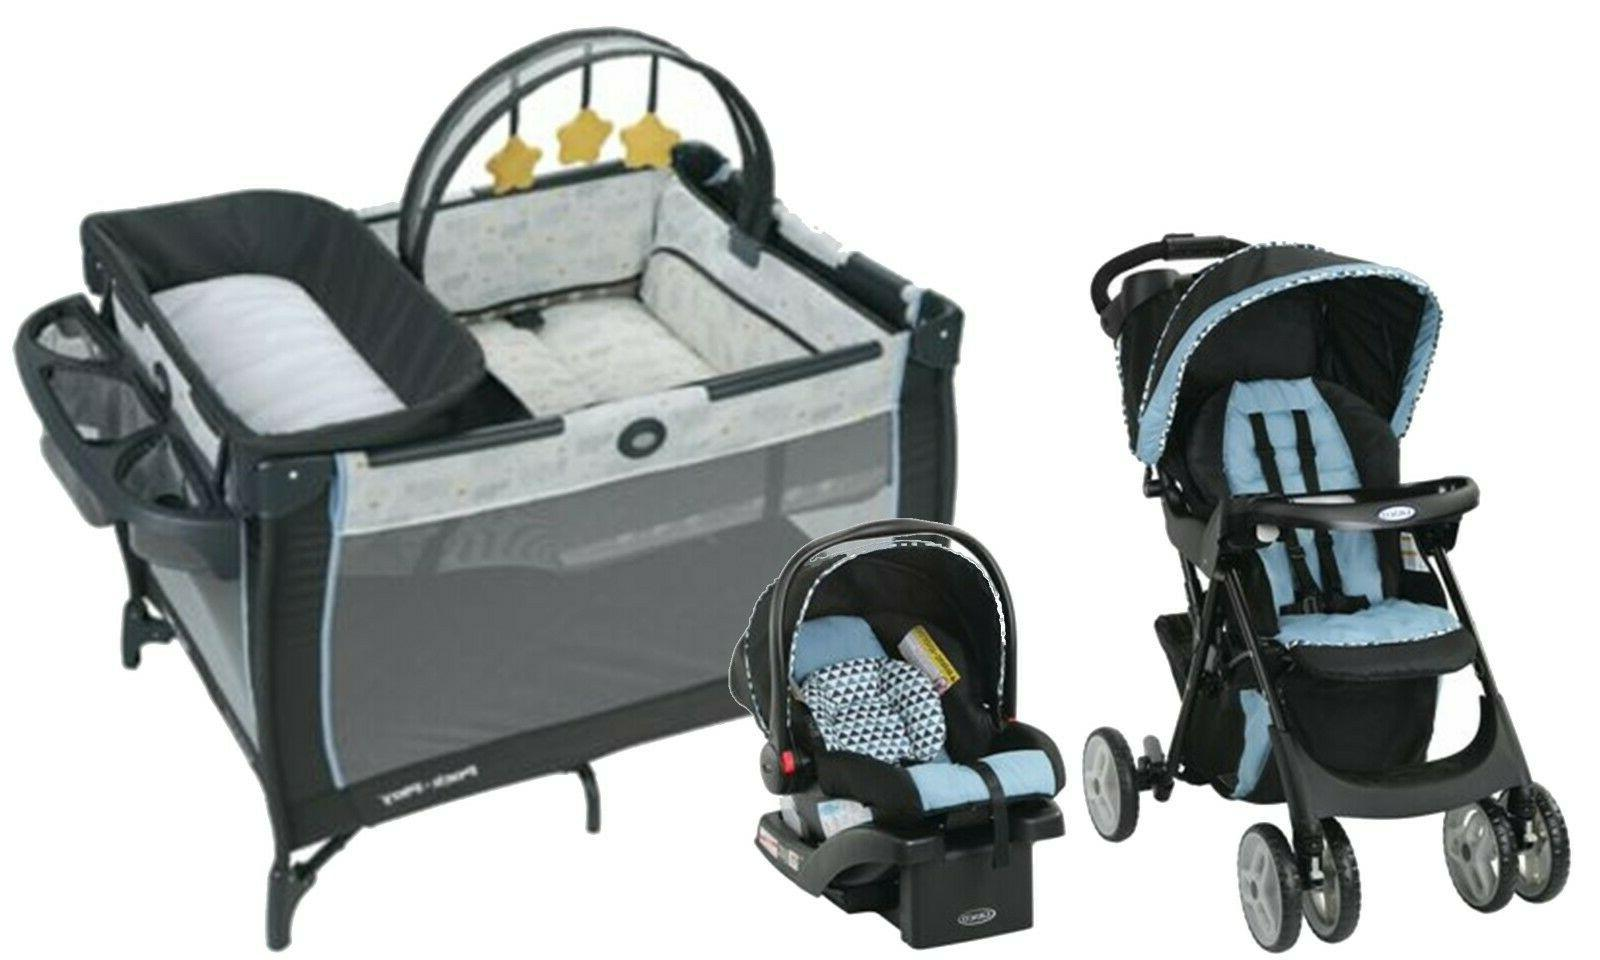 Graco Baby Travel System with Seat Playard Crib Bag Combo